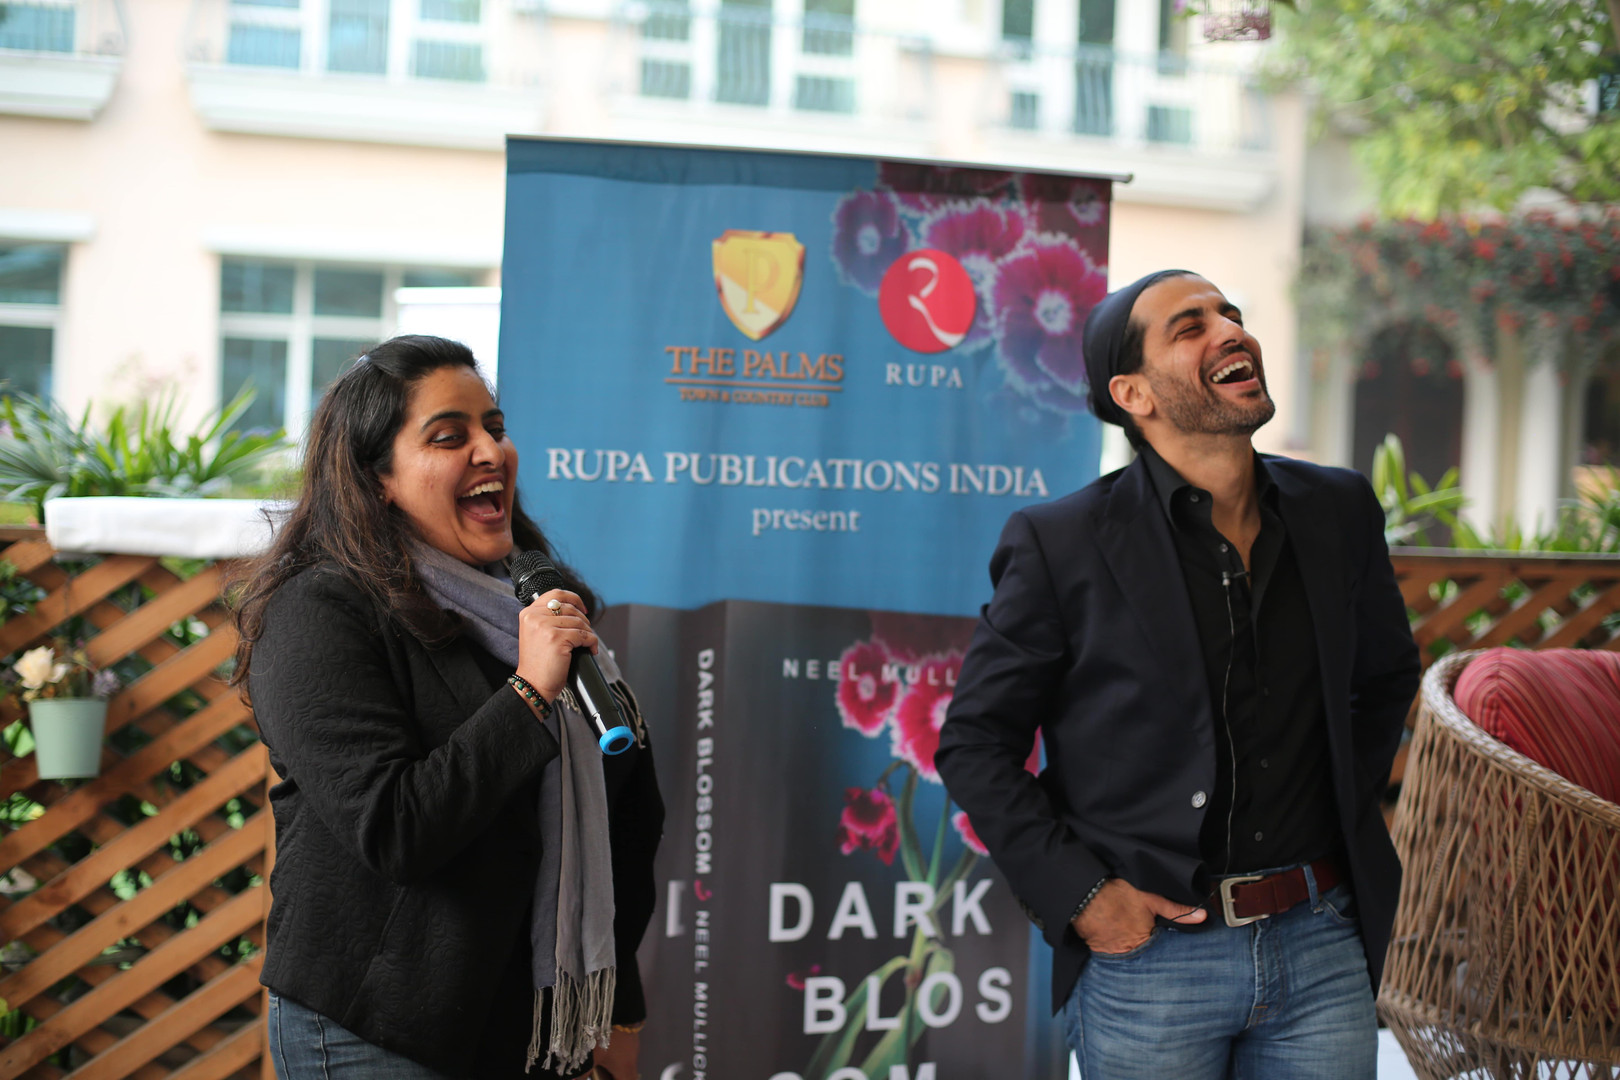 Lots of Laughs with Amrita-min.JPG